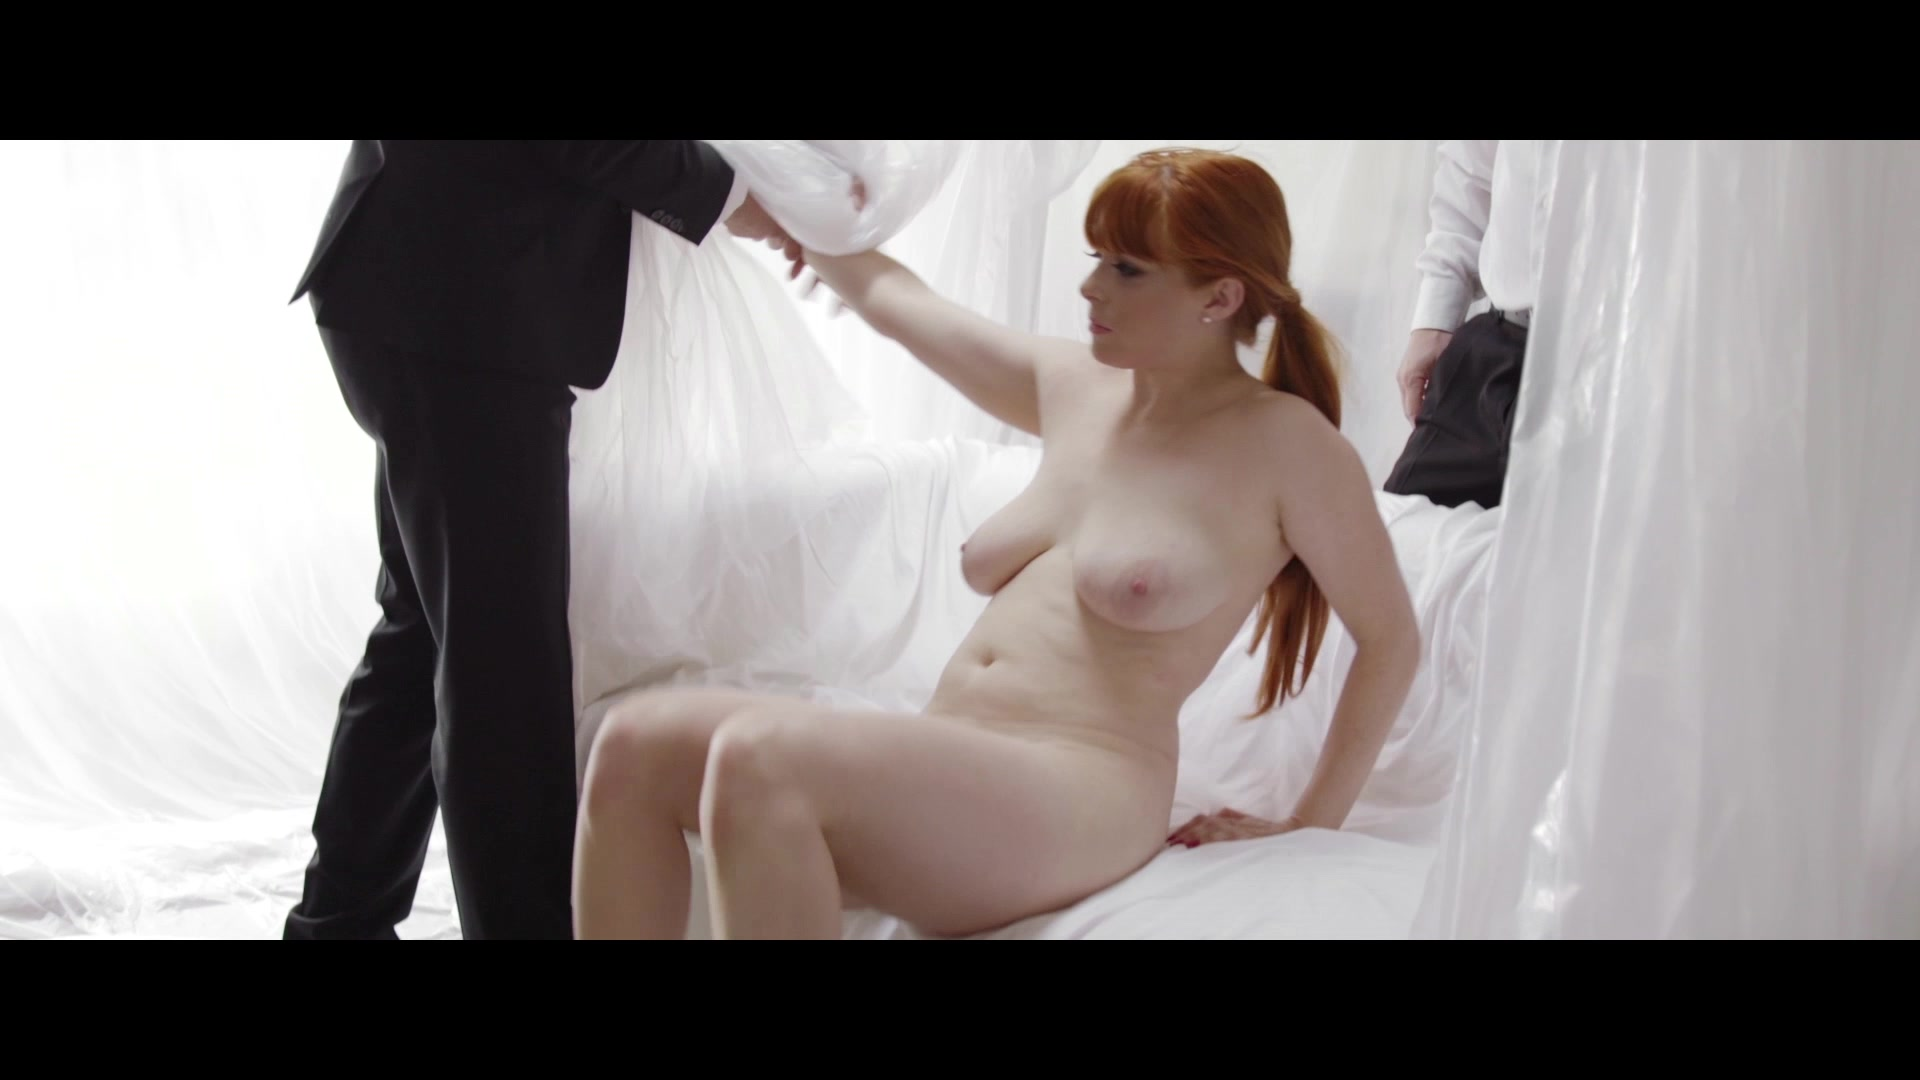 Scene with John Strong, Mick Blue and Penny Pax - image 8 out of 20